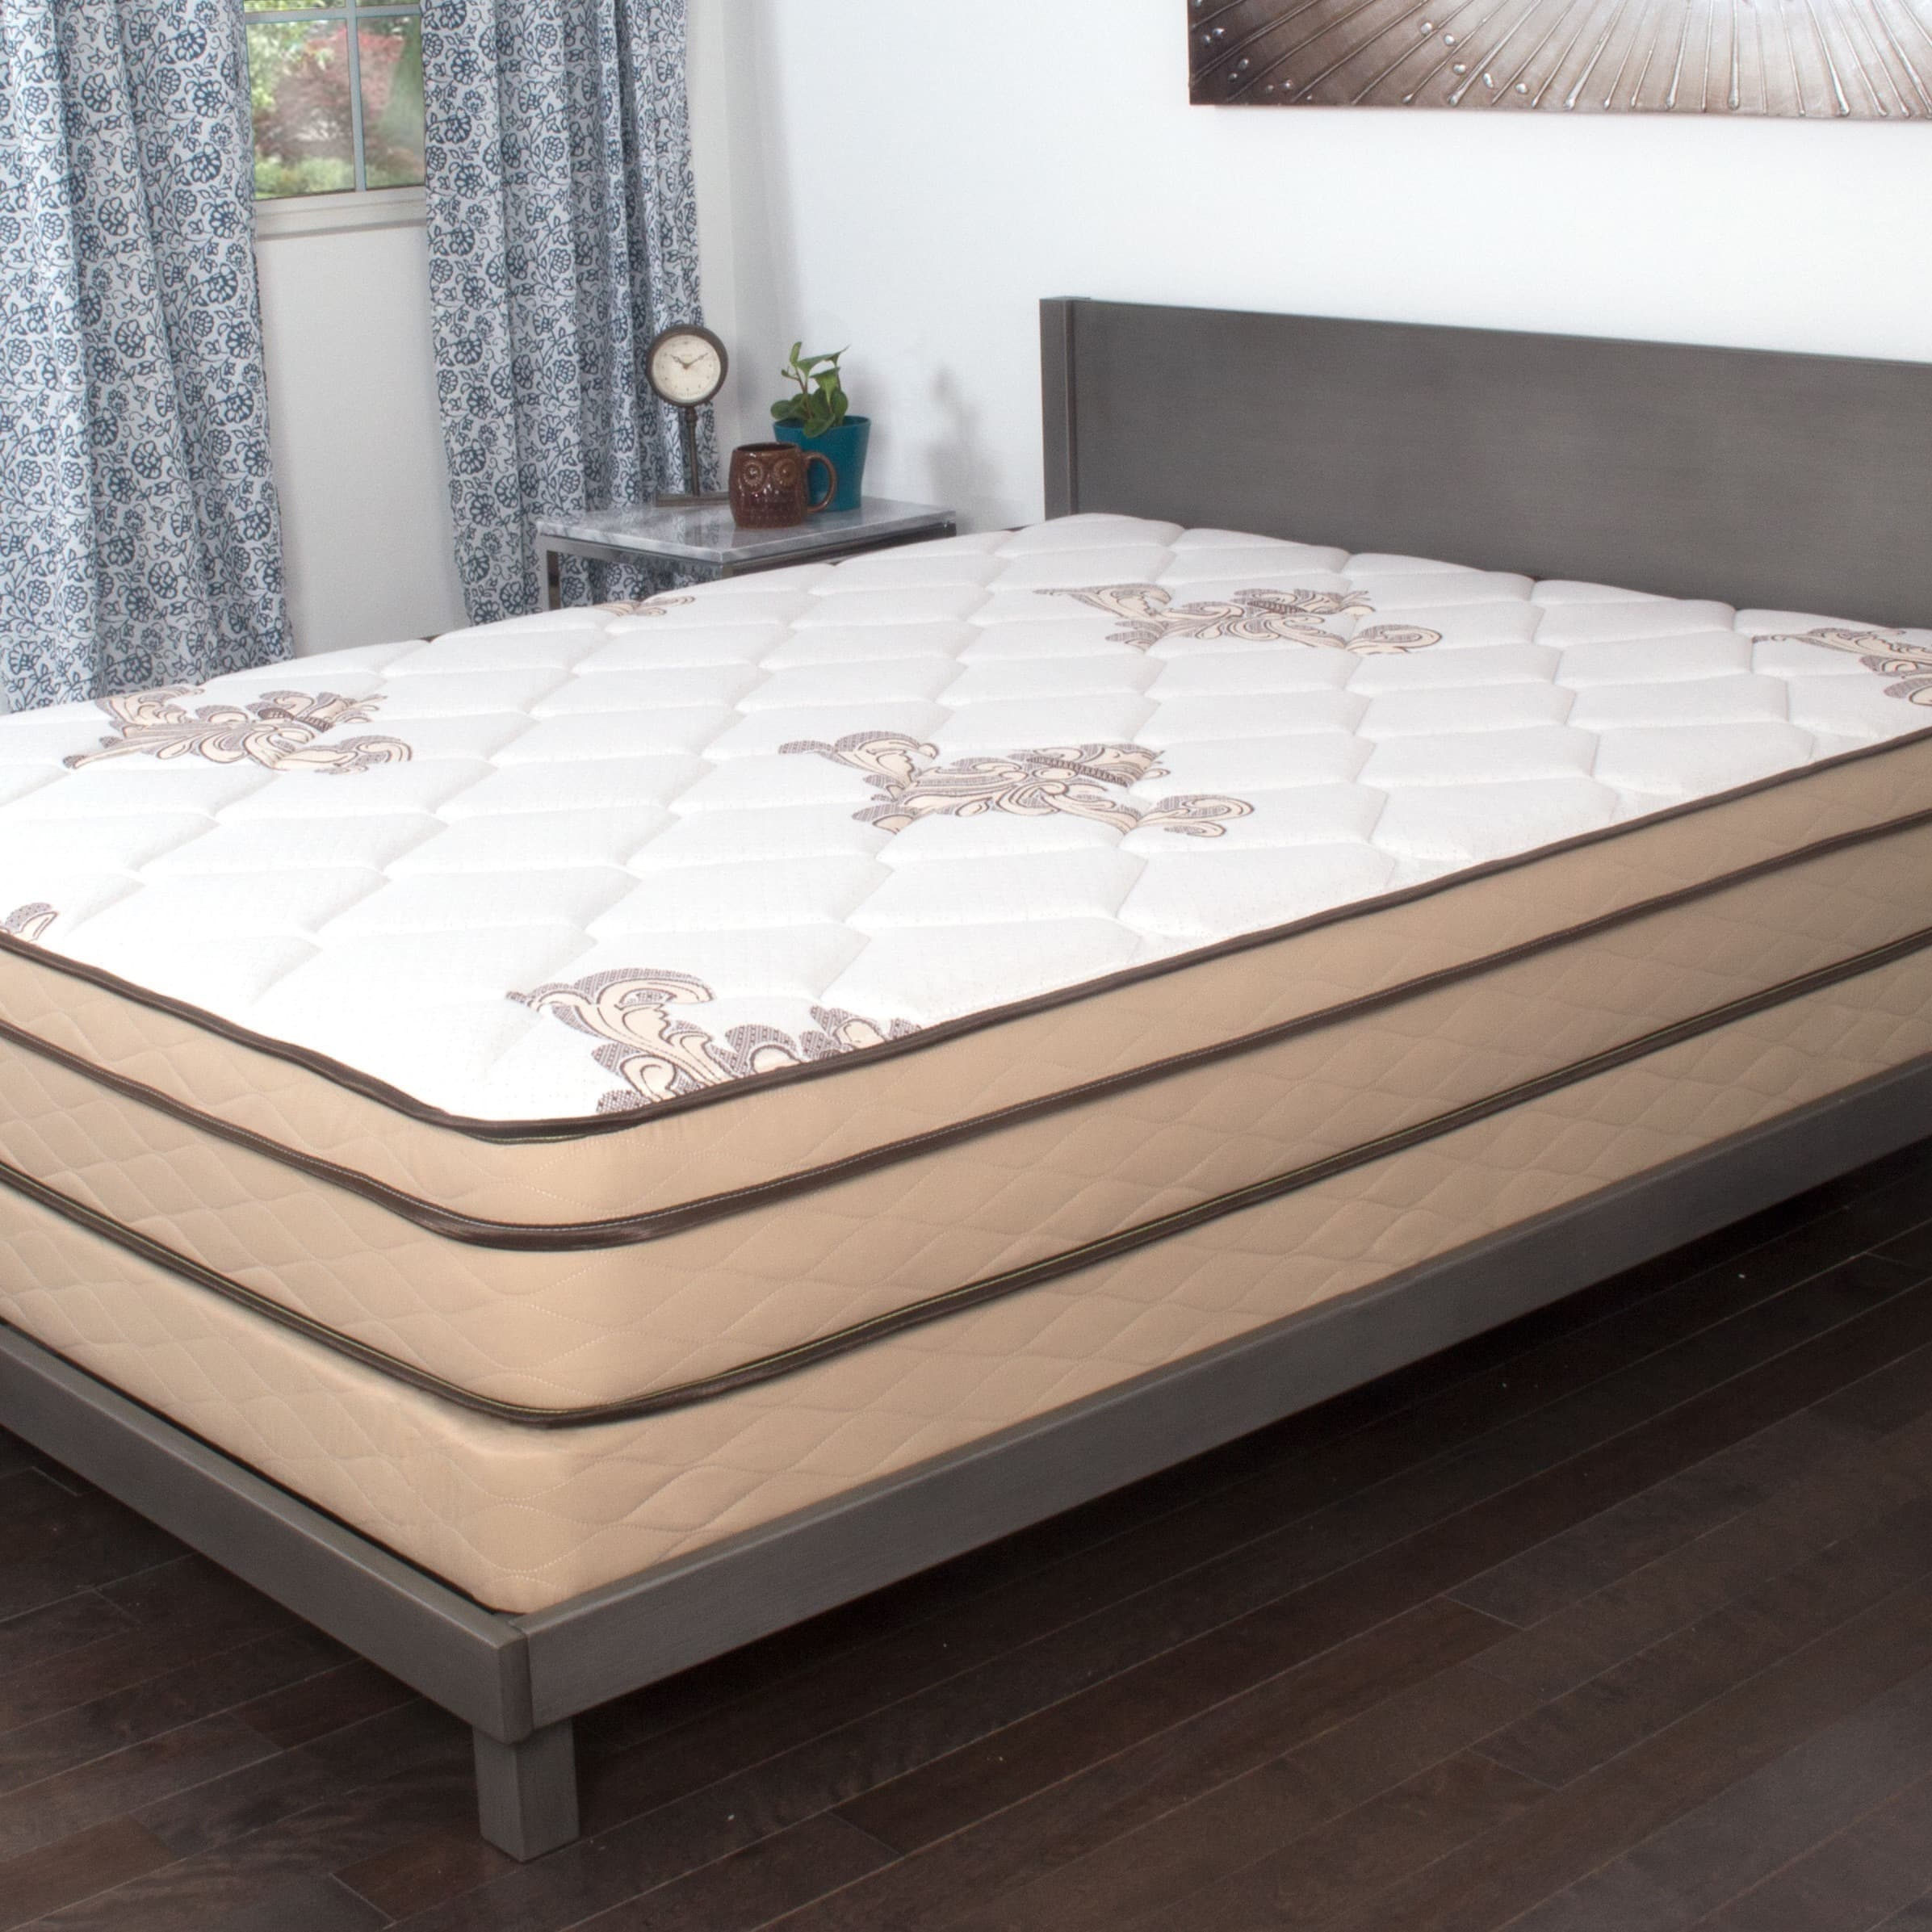 Mattresses Shop Mattresses By Size Type Brands